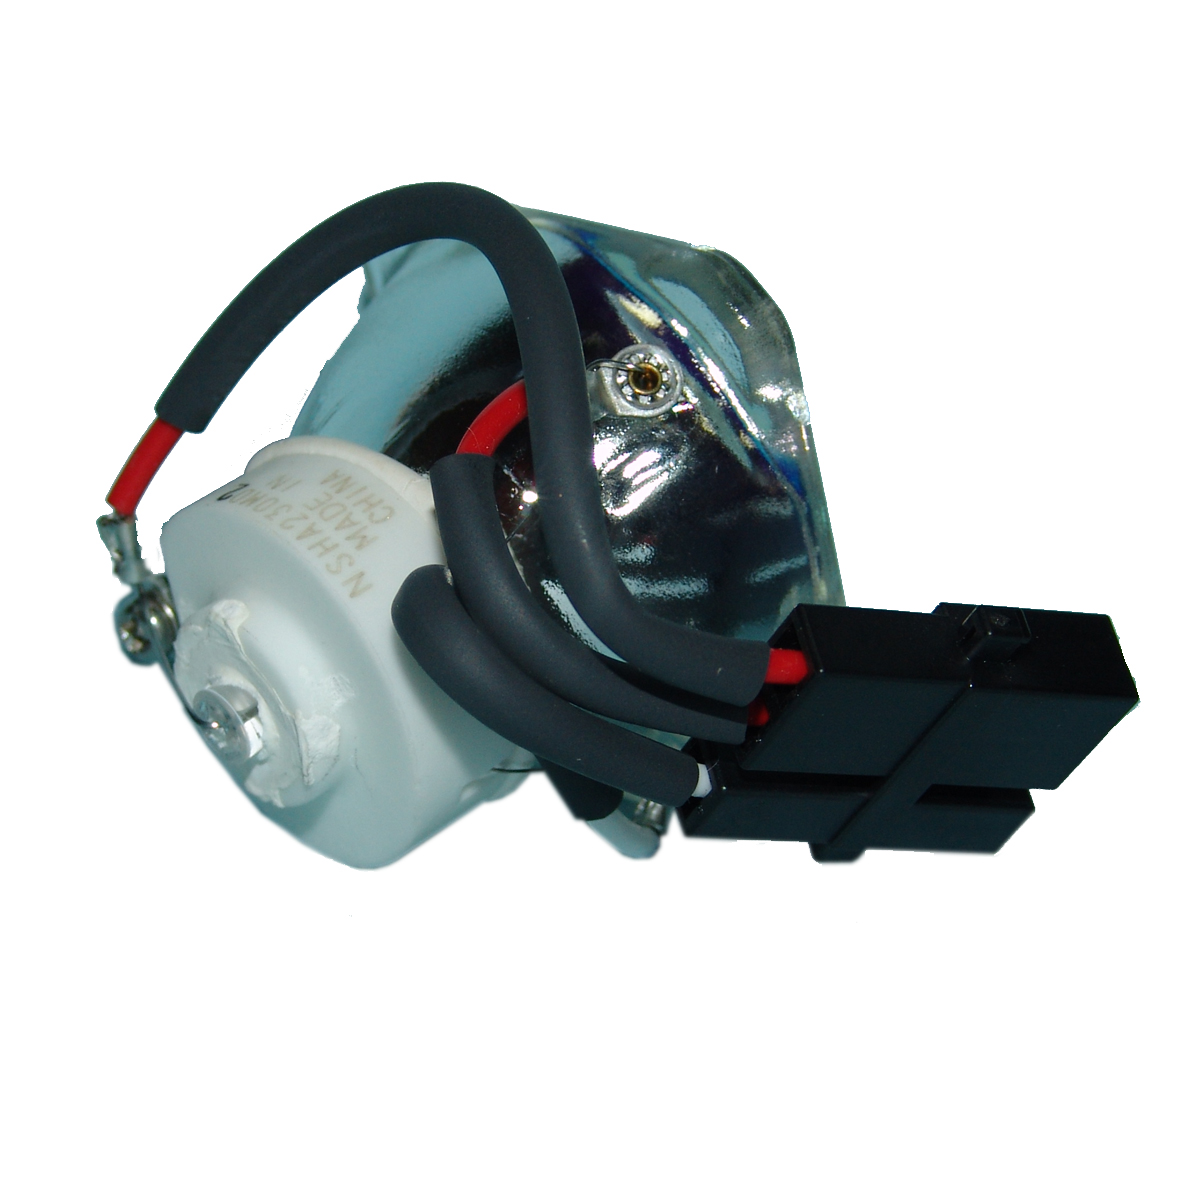 Lutema Platinum for Kindermann KWD 220X Projector Lamp with Housing - image 3 of 5